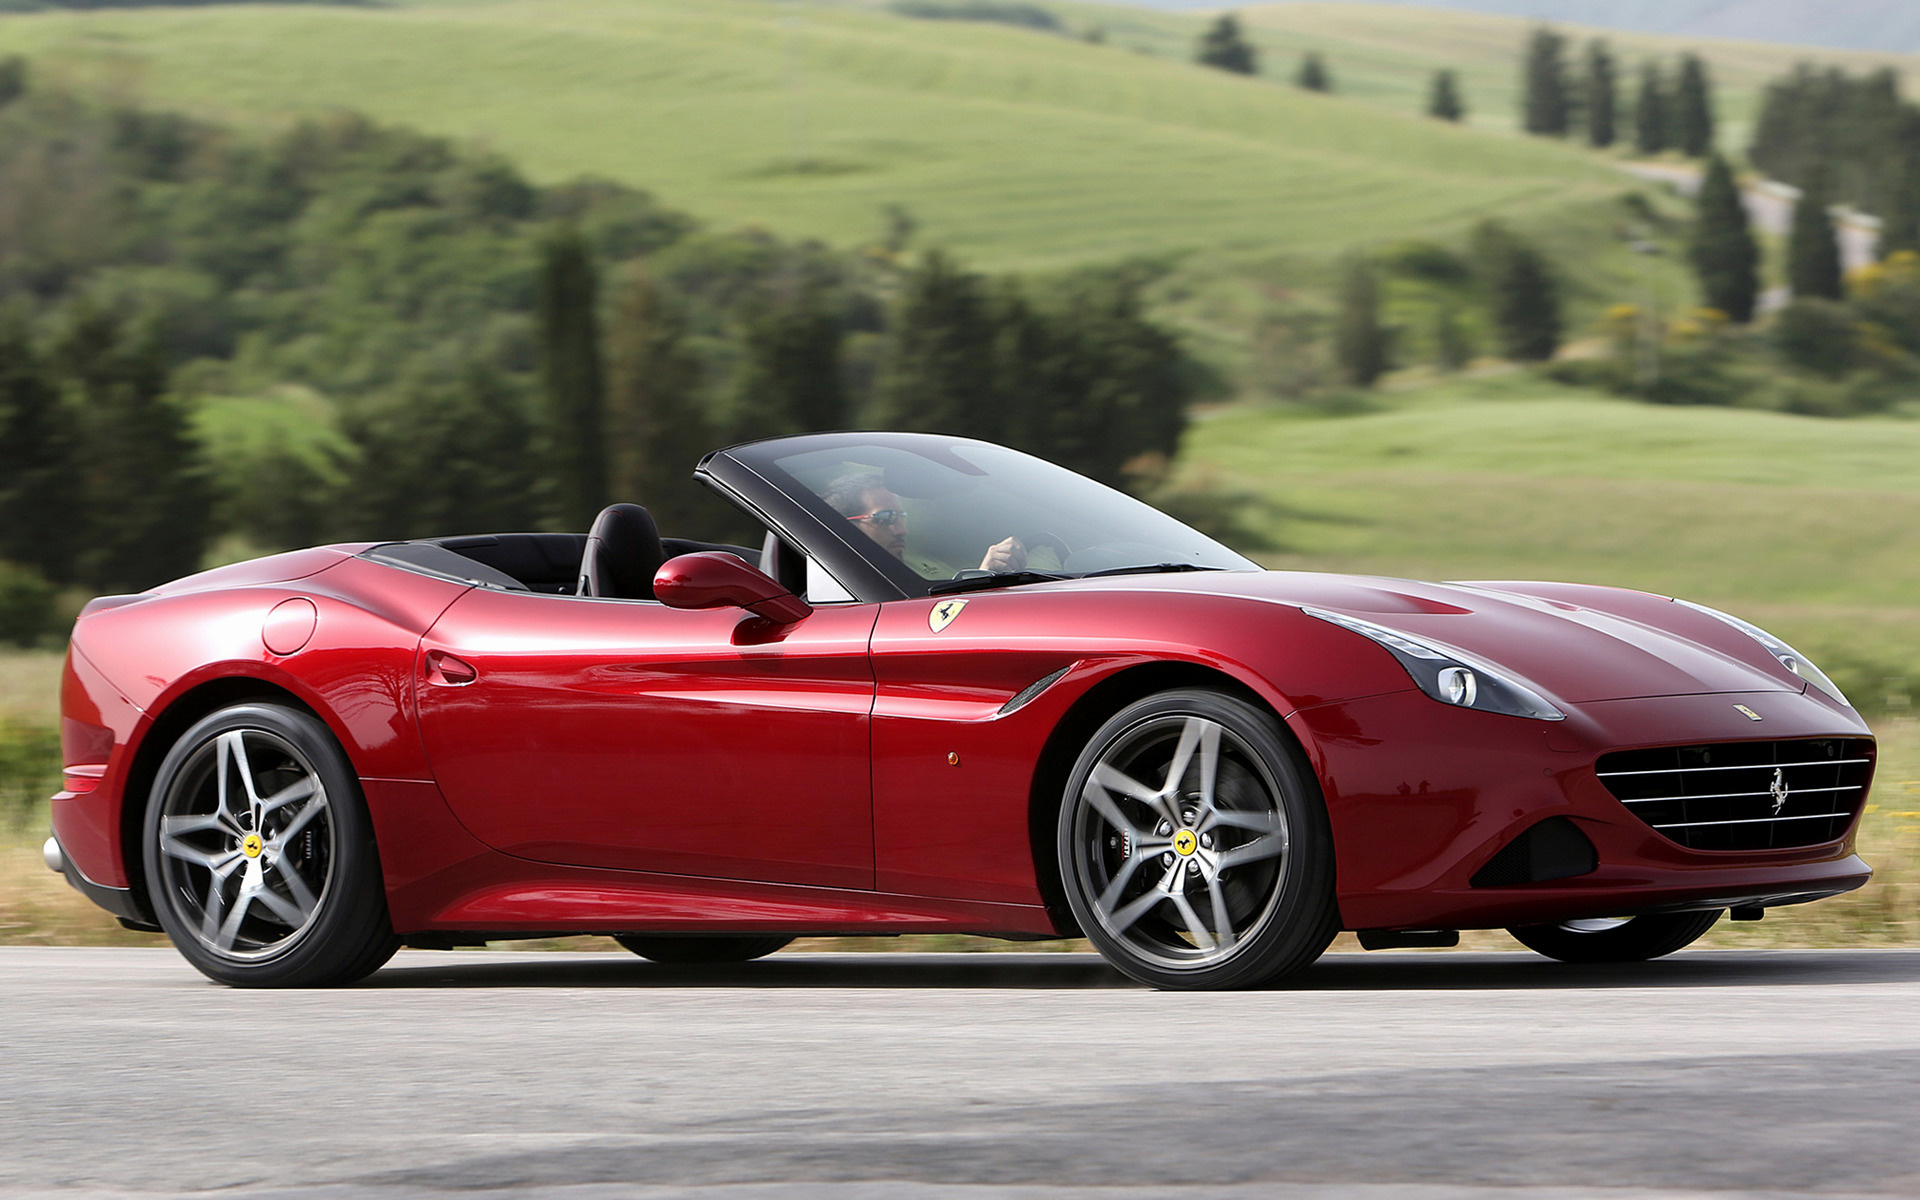 Ferrari california t 2014 wallpapers and hd images car pixel wide 85 voltagebd Image collections